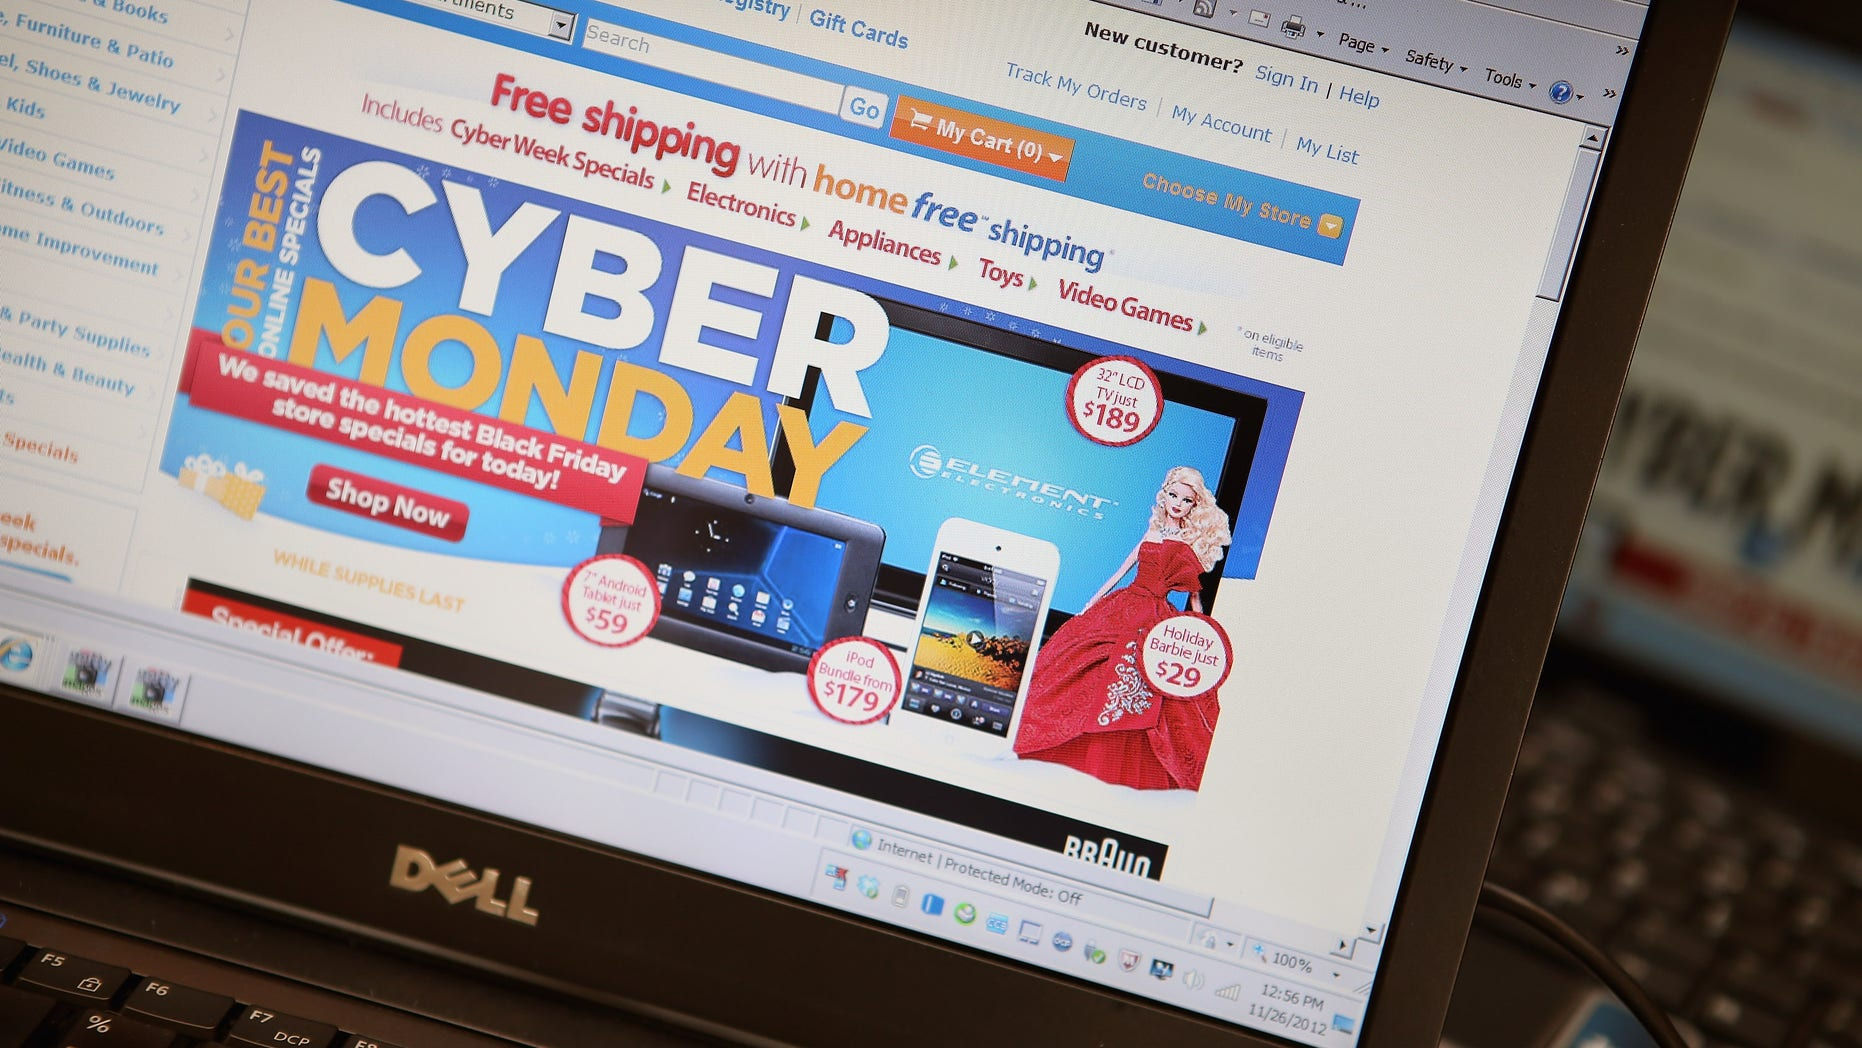 CHICAGO, IL - NOVEMBER 26:  In this photo illustration, a retailer advertises Cyber Monday deals on their websites on November 26, 2012 in Chicago, Illinois. Americans are expected to spend $1.5 billion while shopping online today, up 20 percent from last year.  (Photo Illustration by Scott Olson/Getty Images)